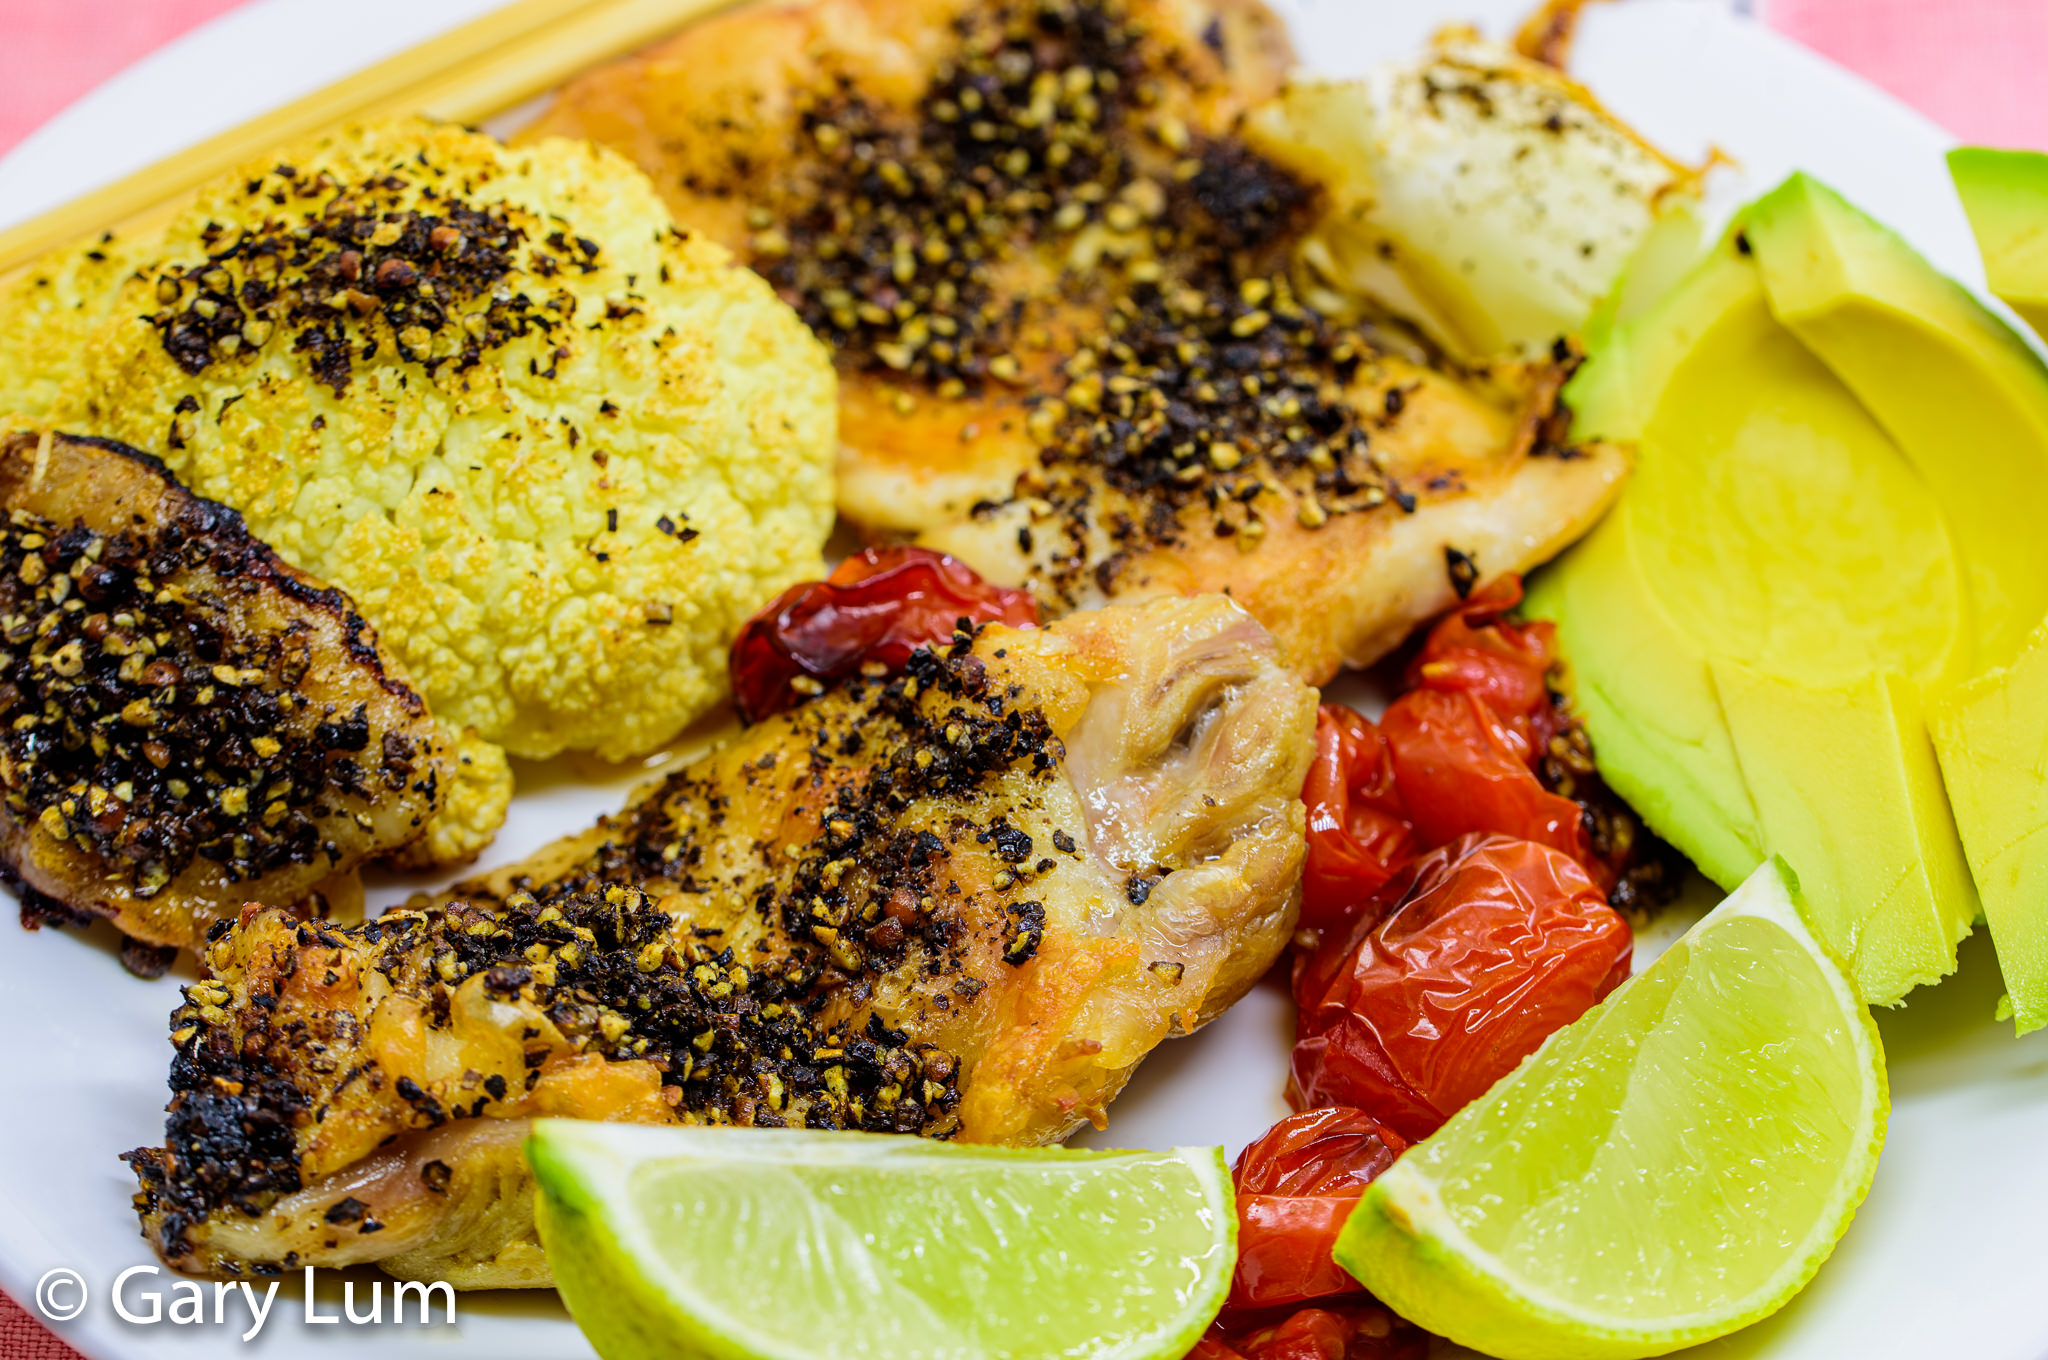 Close up. Deboned chicken thigh and drumstick with cauliflower, tomatoes, and avocado. Gary Lum.